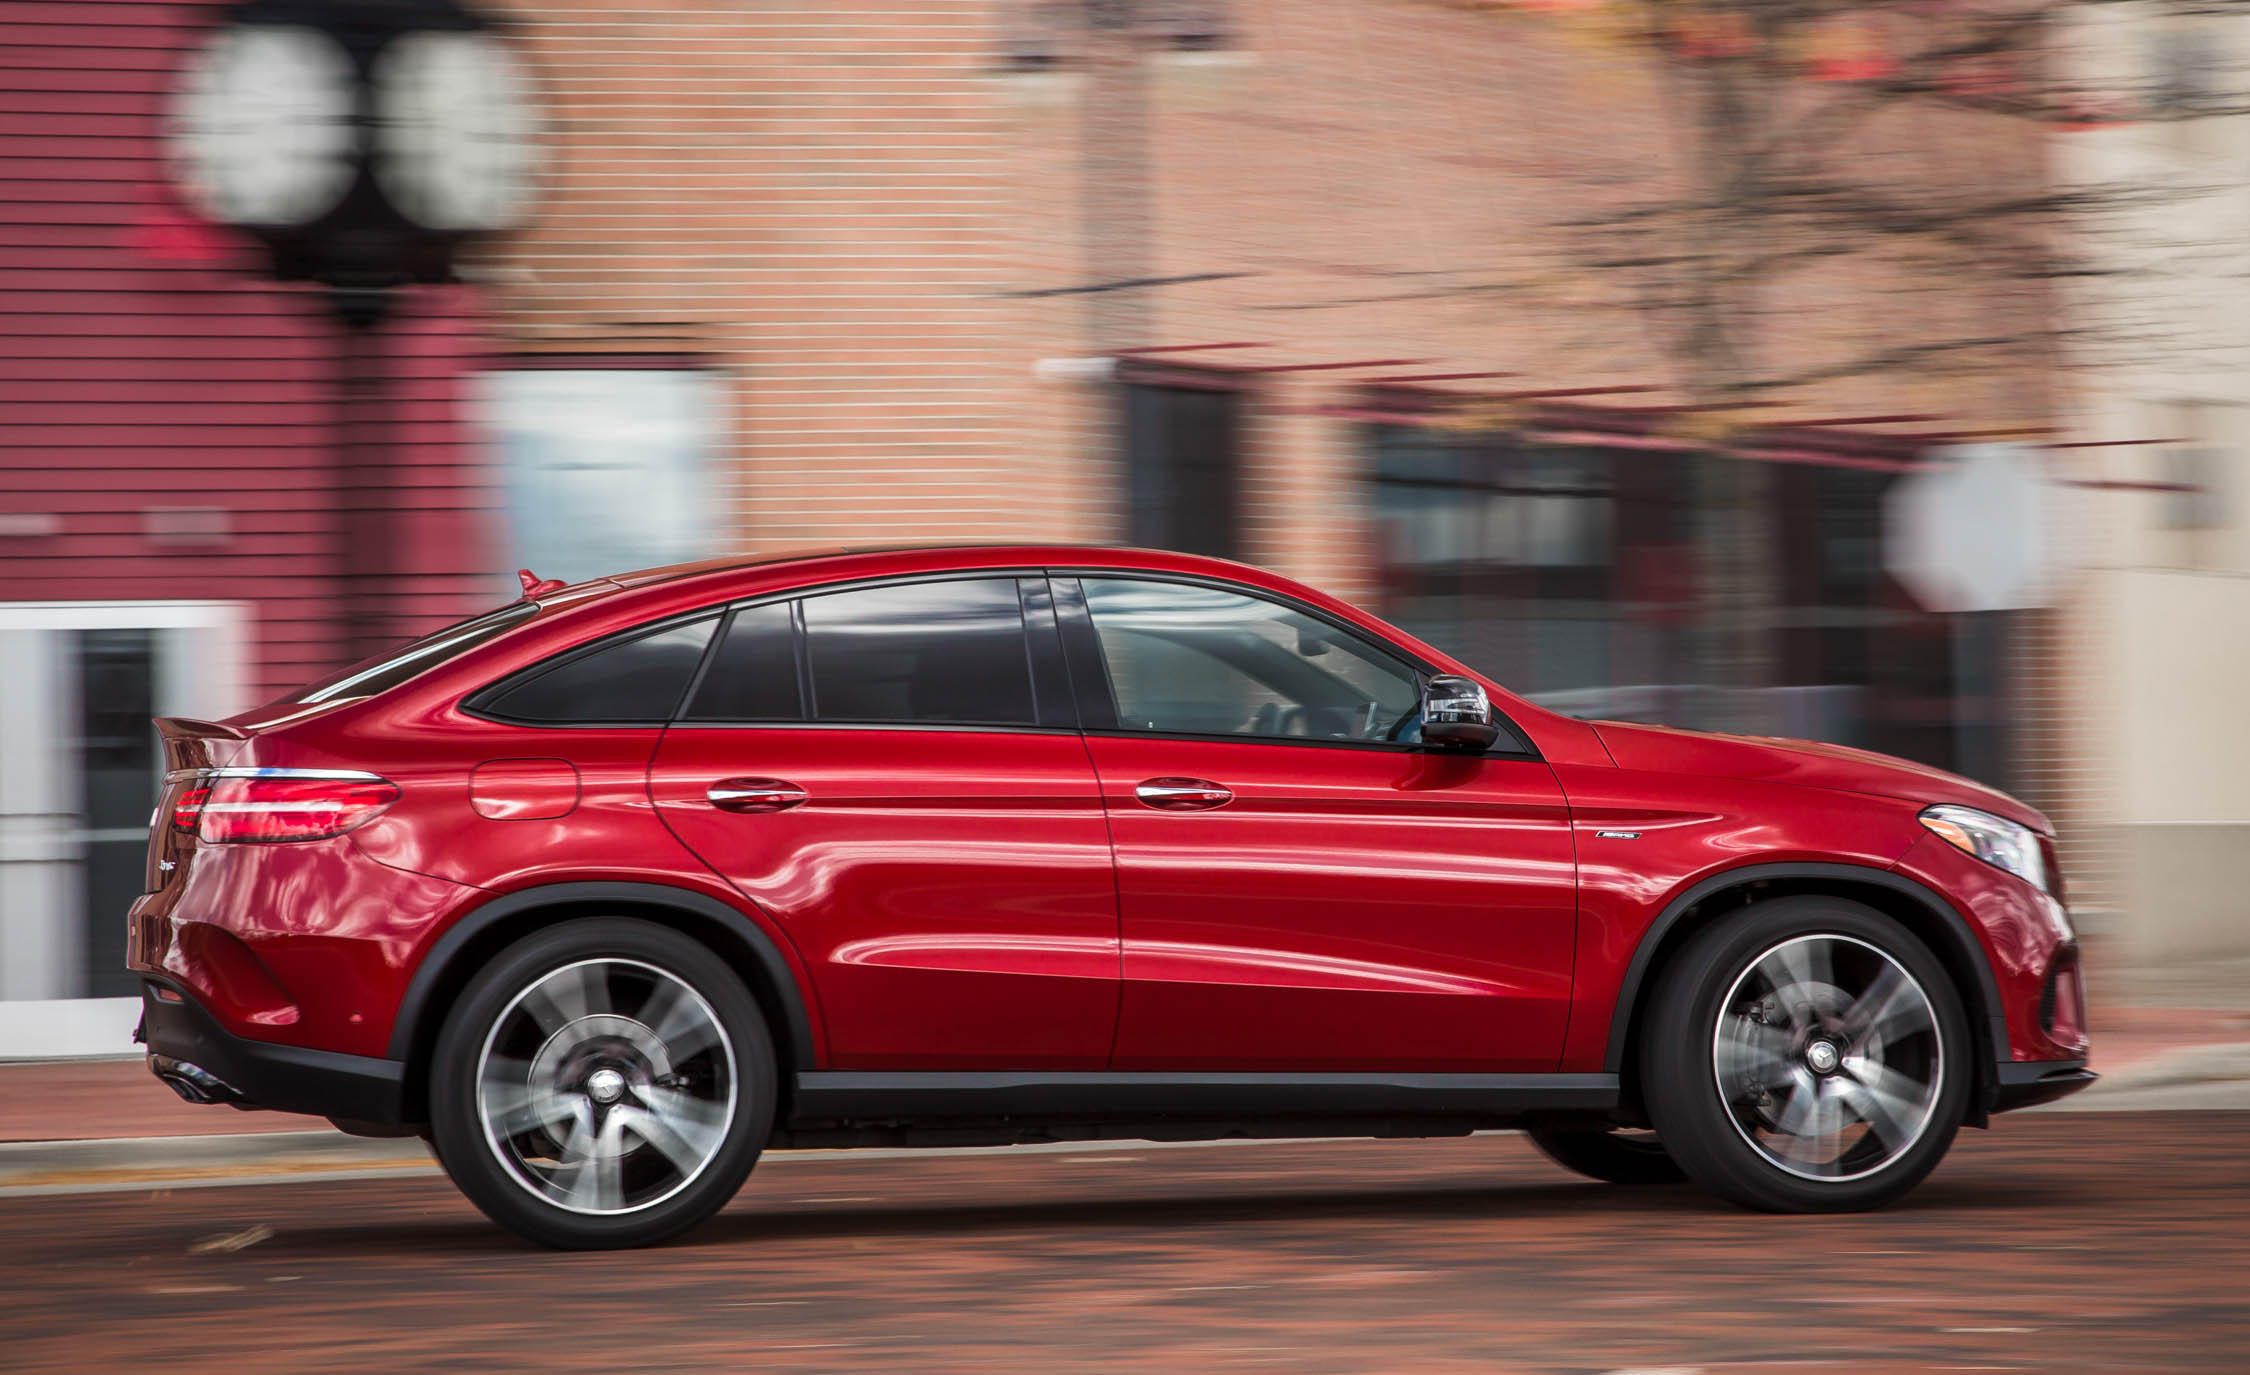 2016 Mercedes-Benz GLE450 AMG Coupe Test Preview